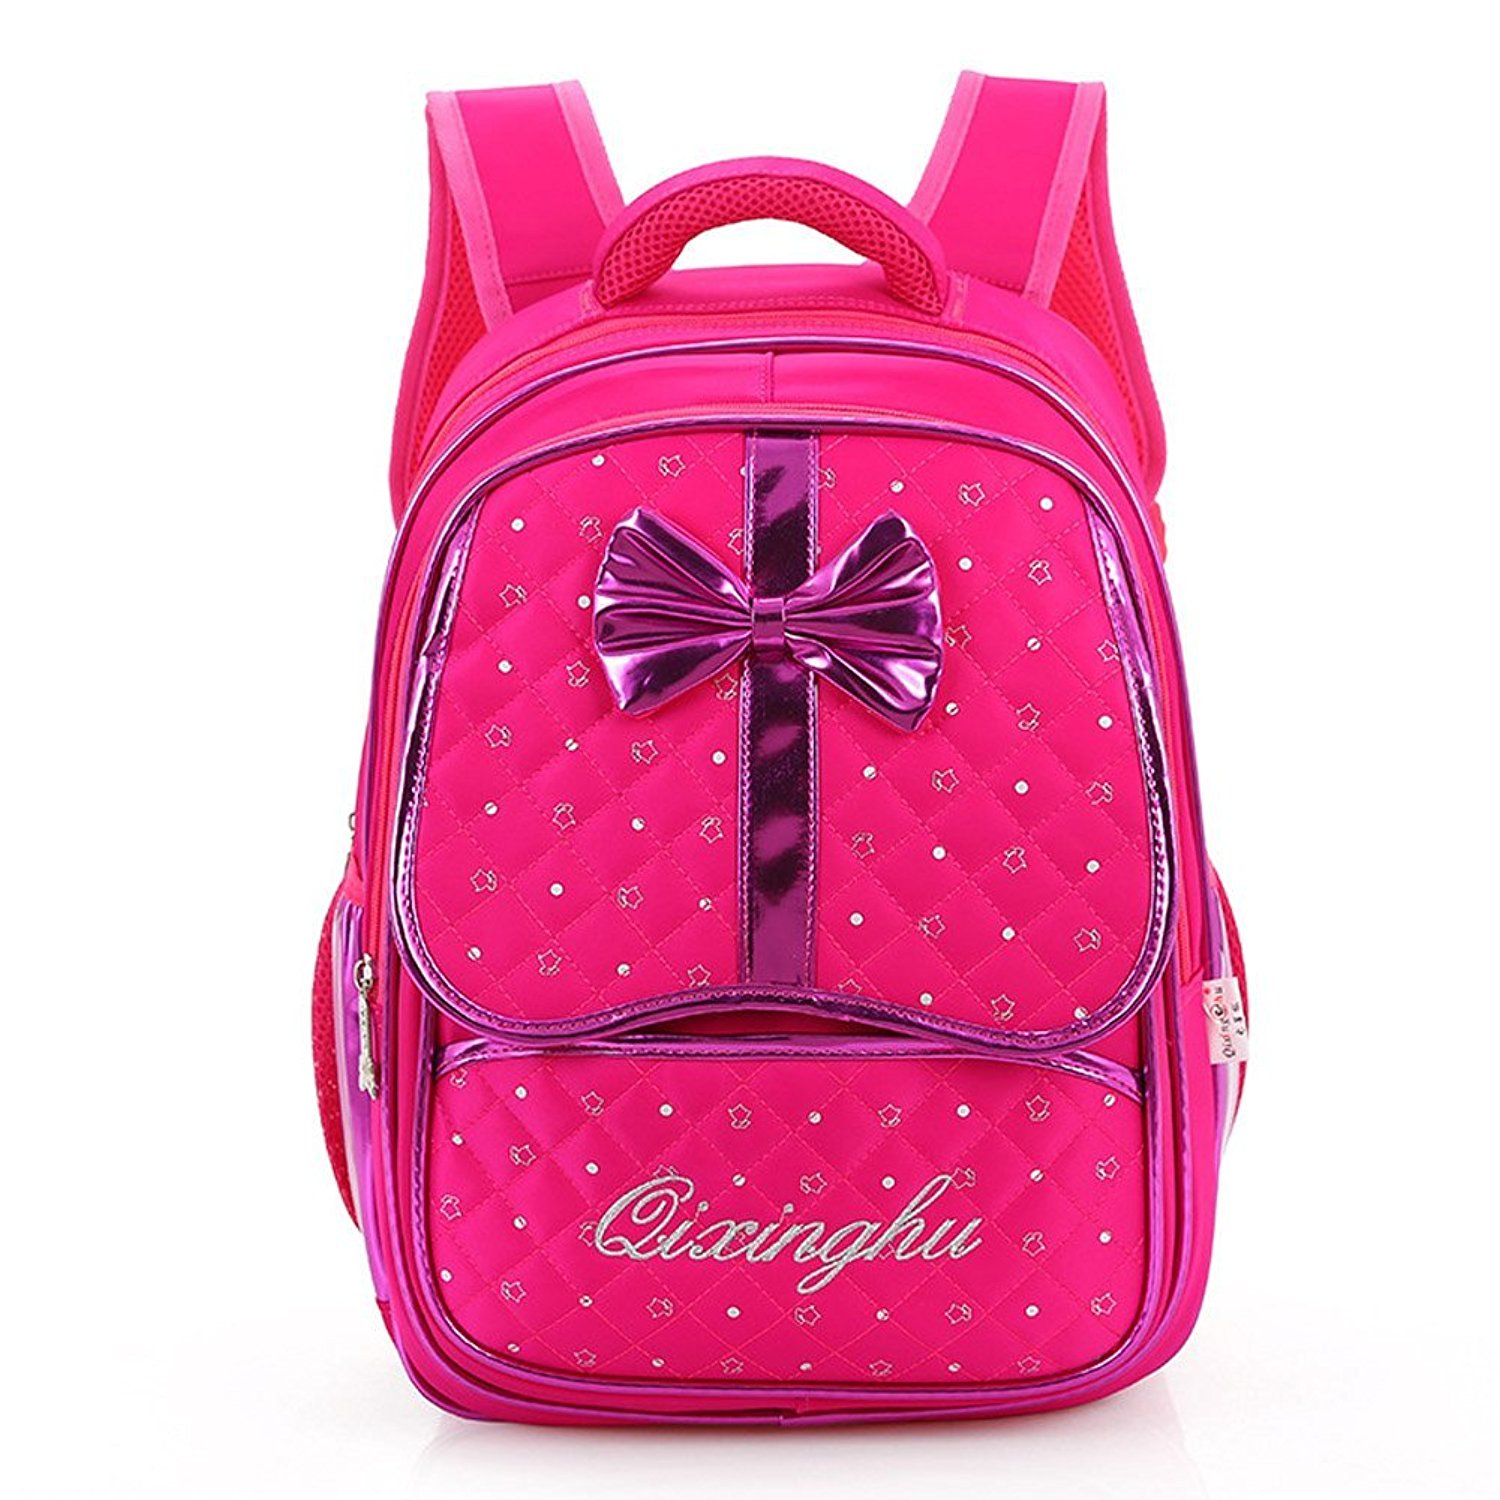 9503337737 Dsinlare Bowknot Girls Elementary School Bags Cute Backpacks for Kids